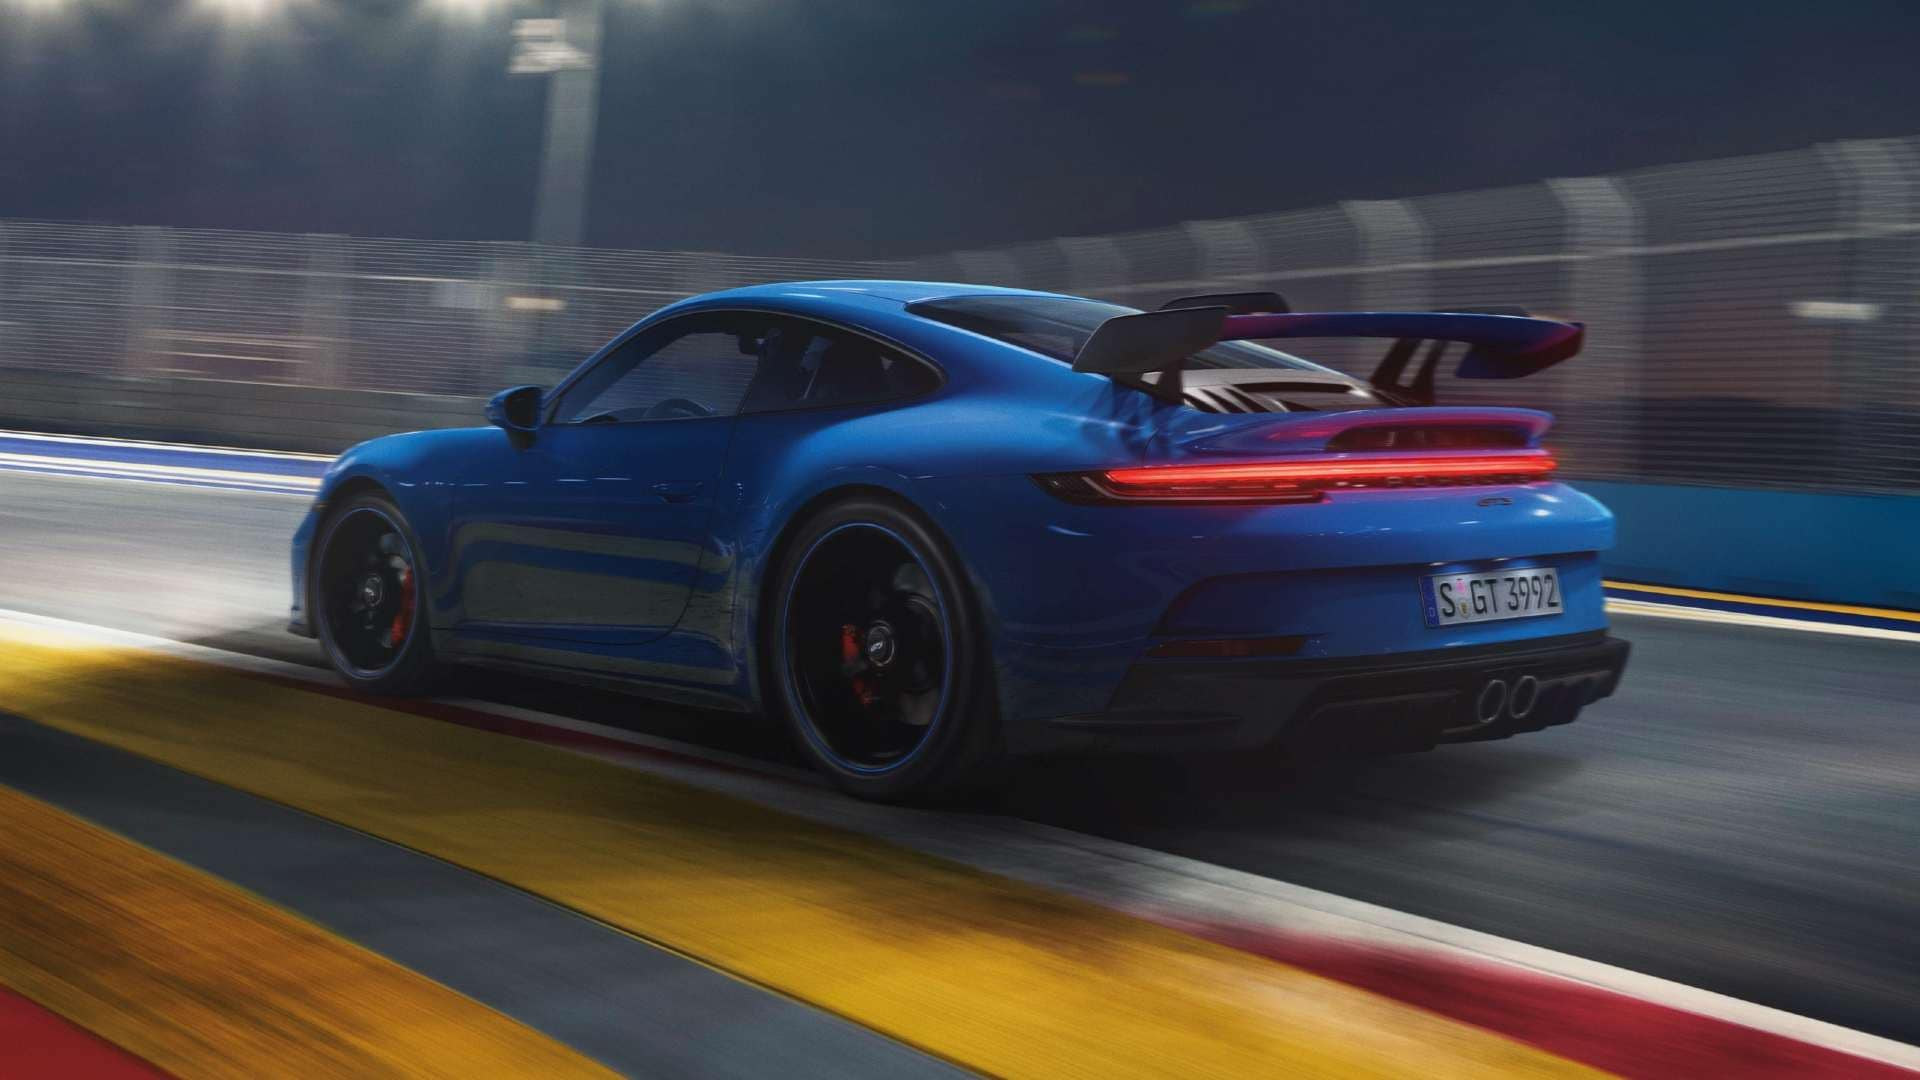 All-new Porsche 911 GT3 debuts with race car-derived 510hp flat-six engine, swan-neck rear wing- Technology News, FP